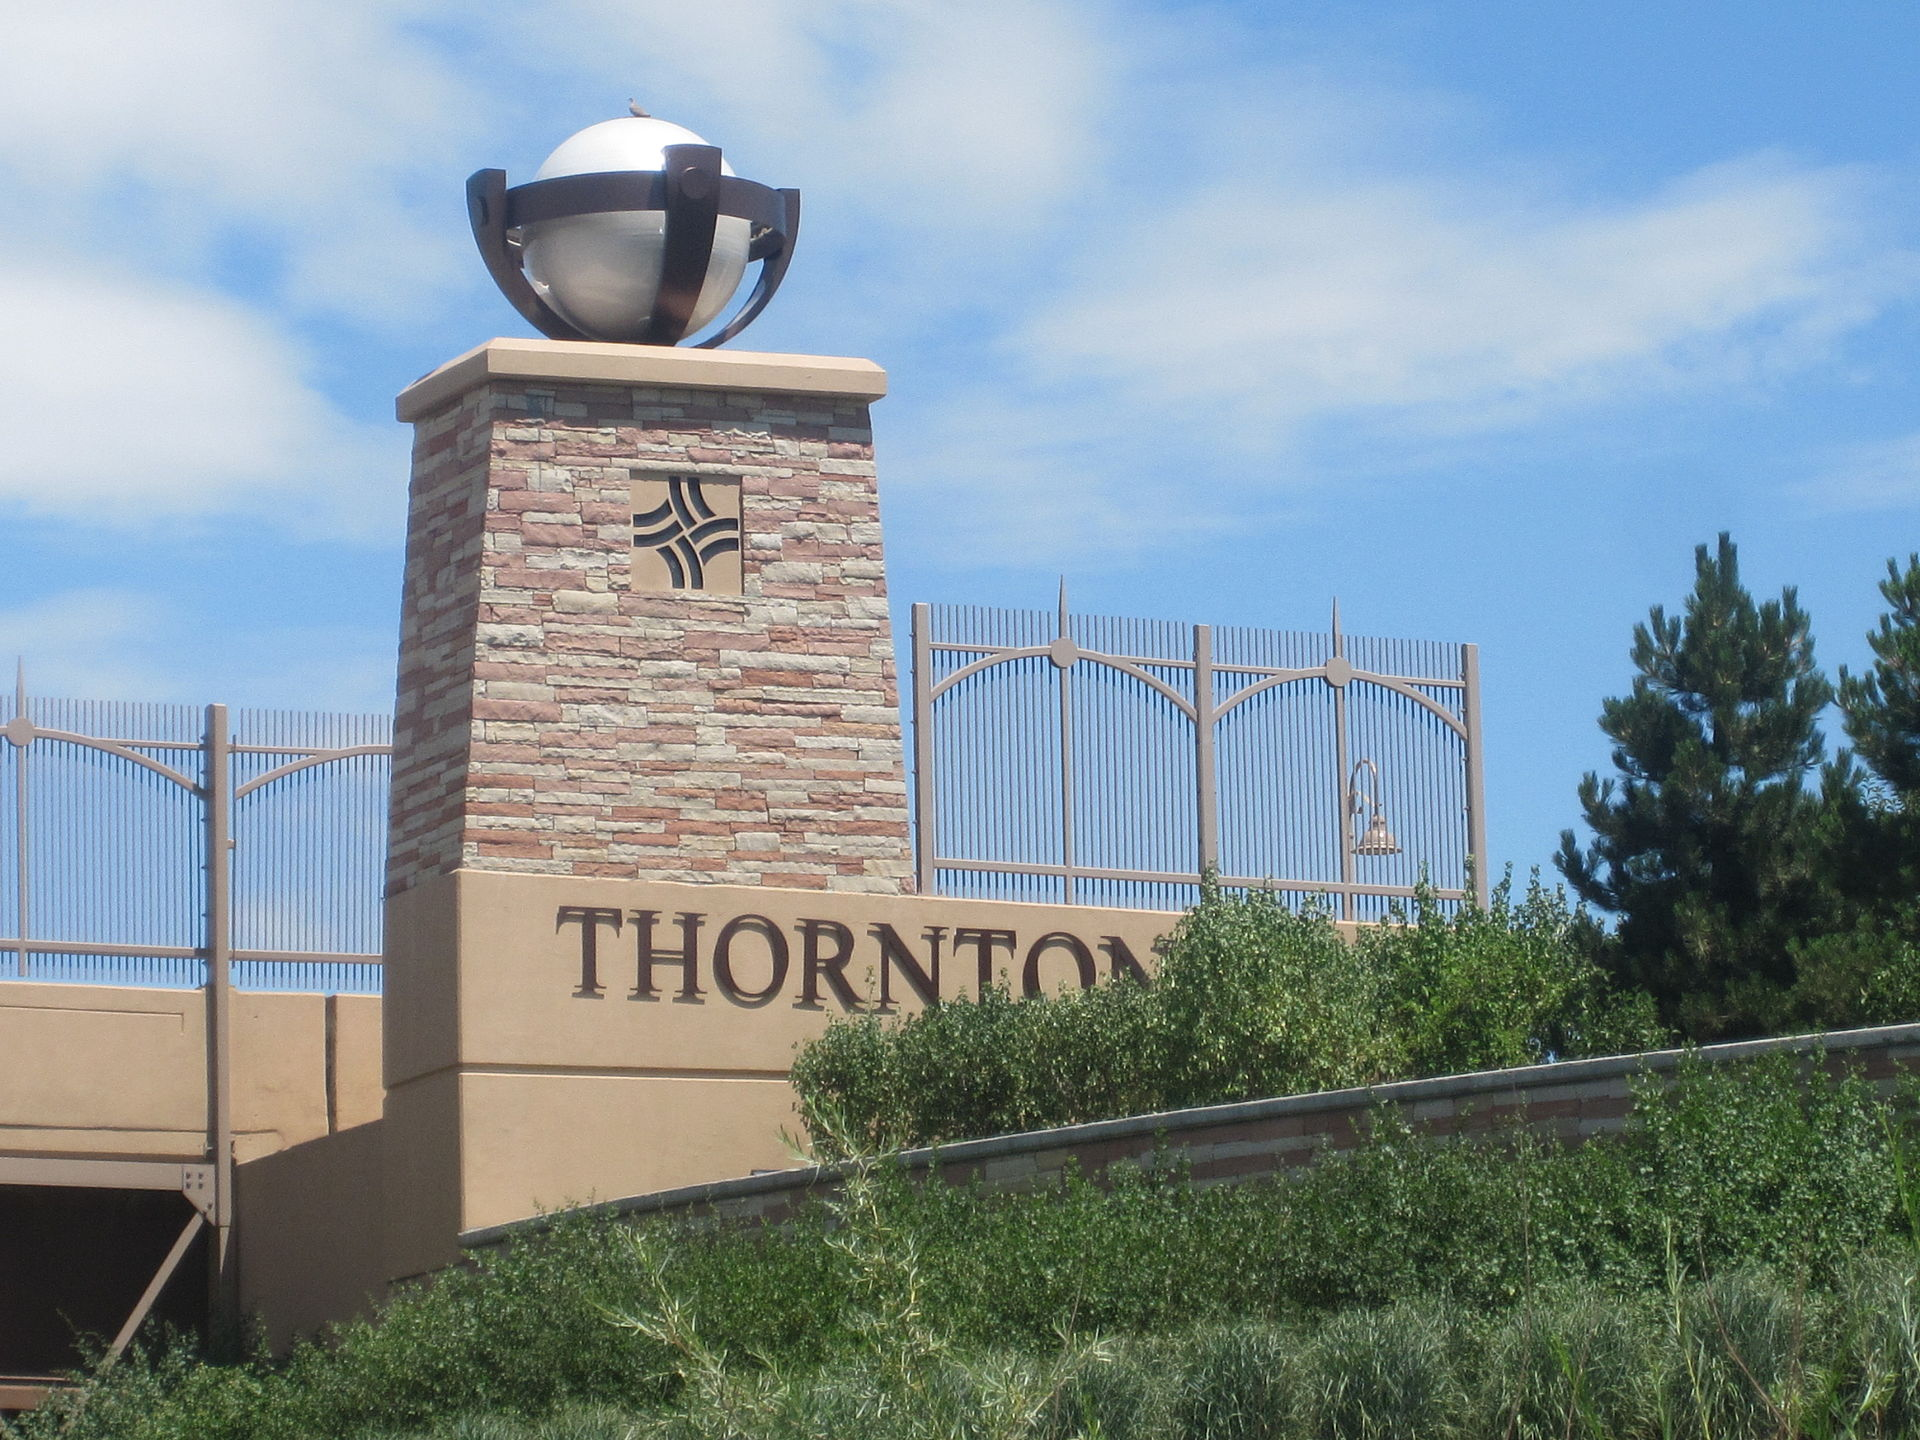 Thornton home warranty